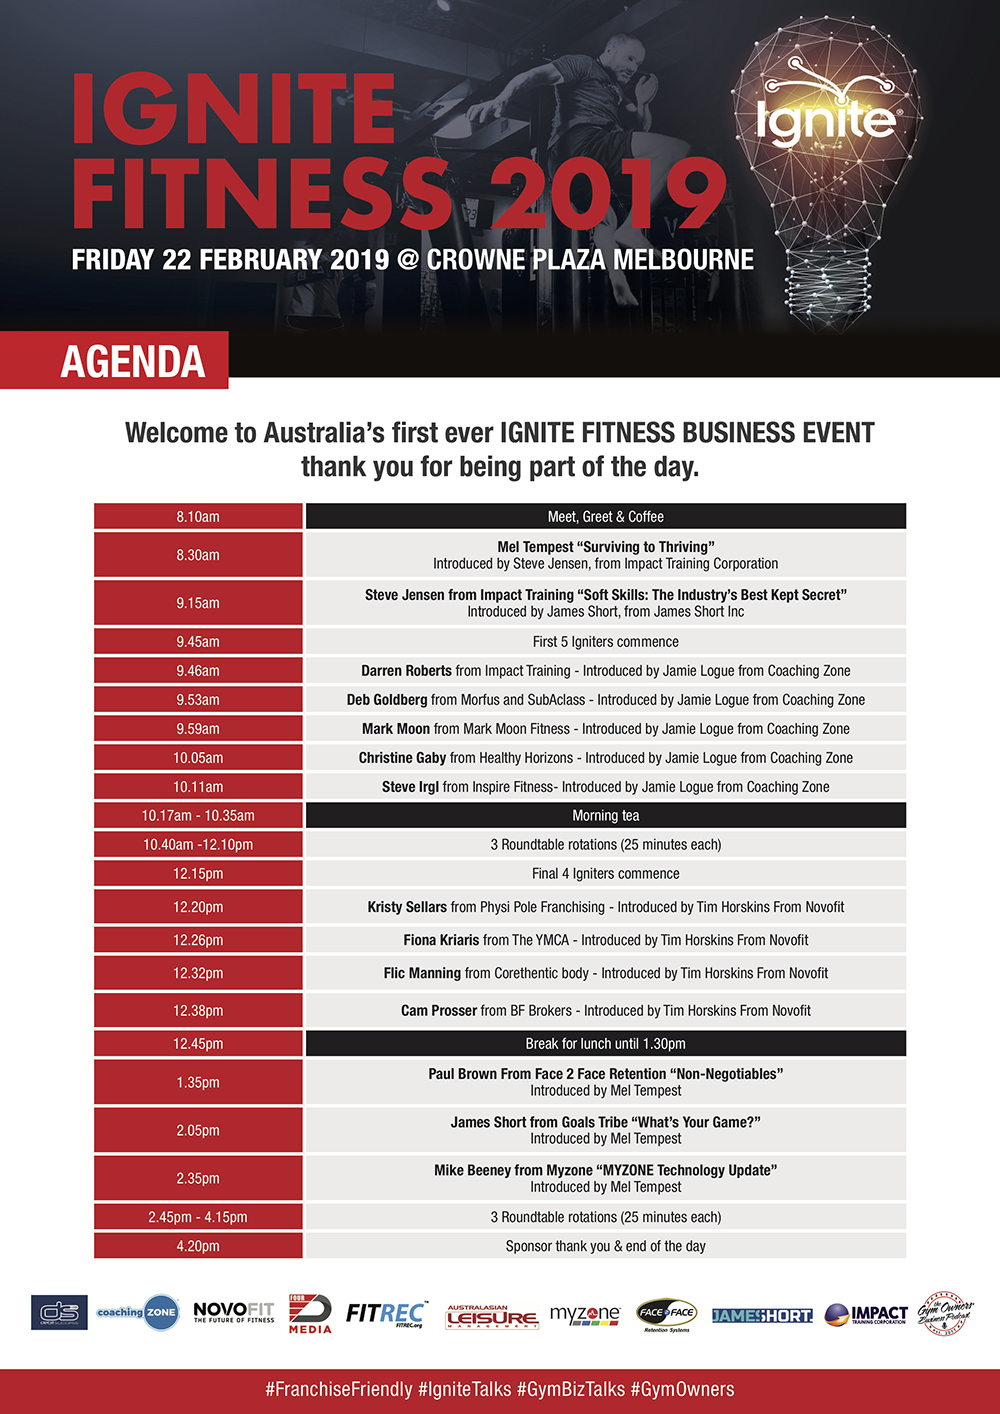 Ignite Fitness 2019 - Agenda